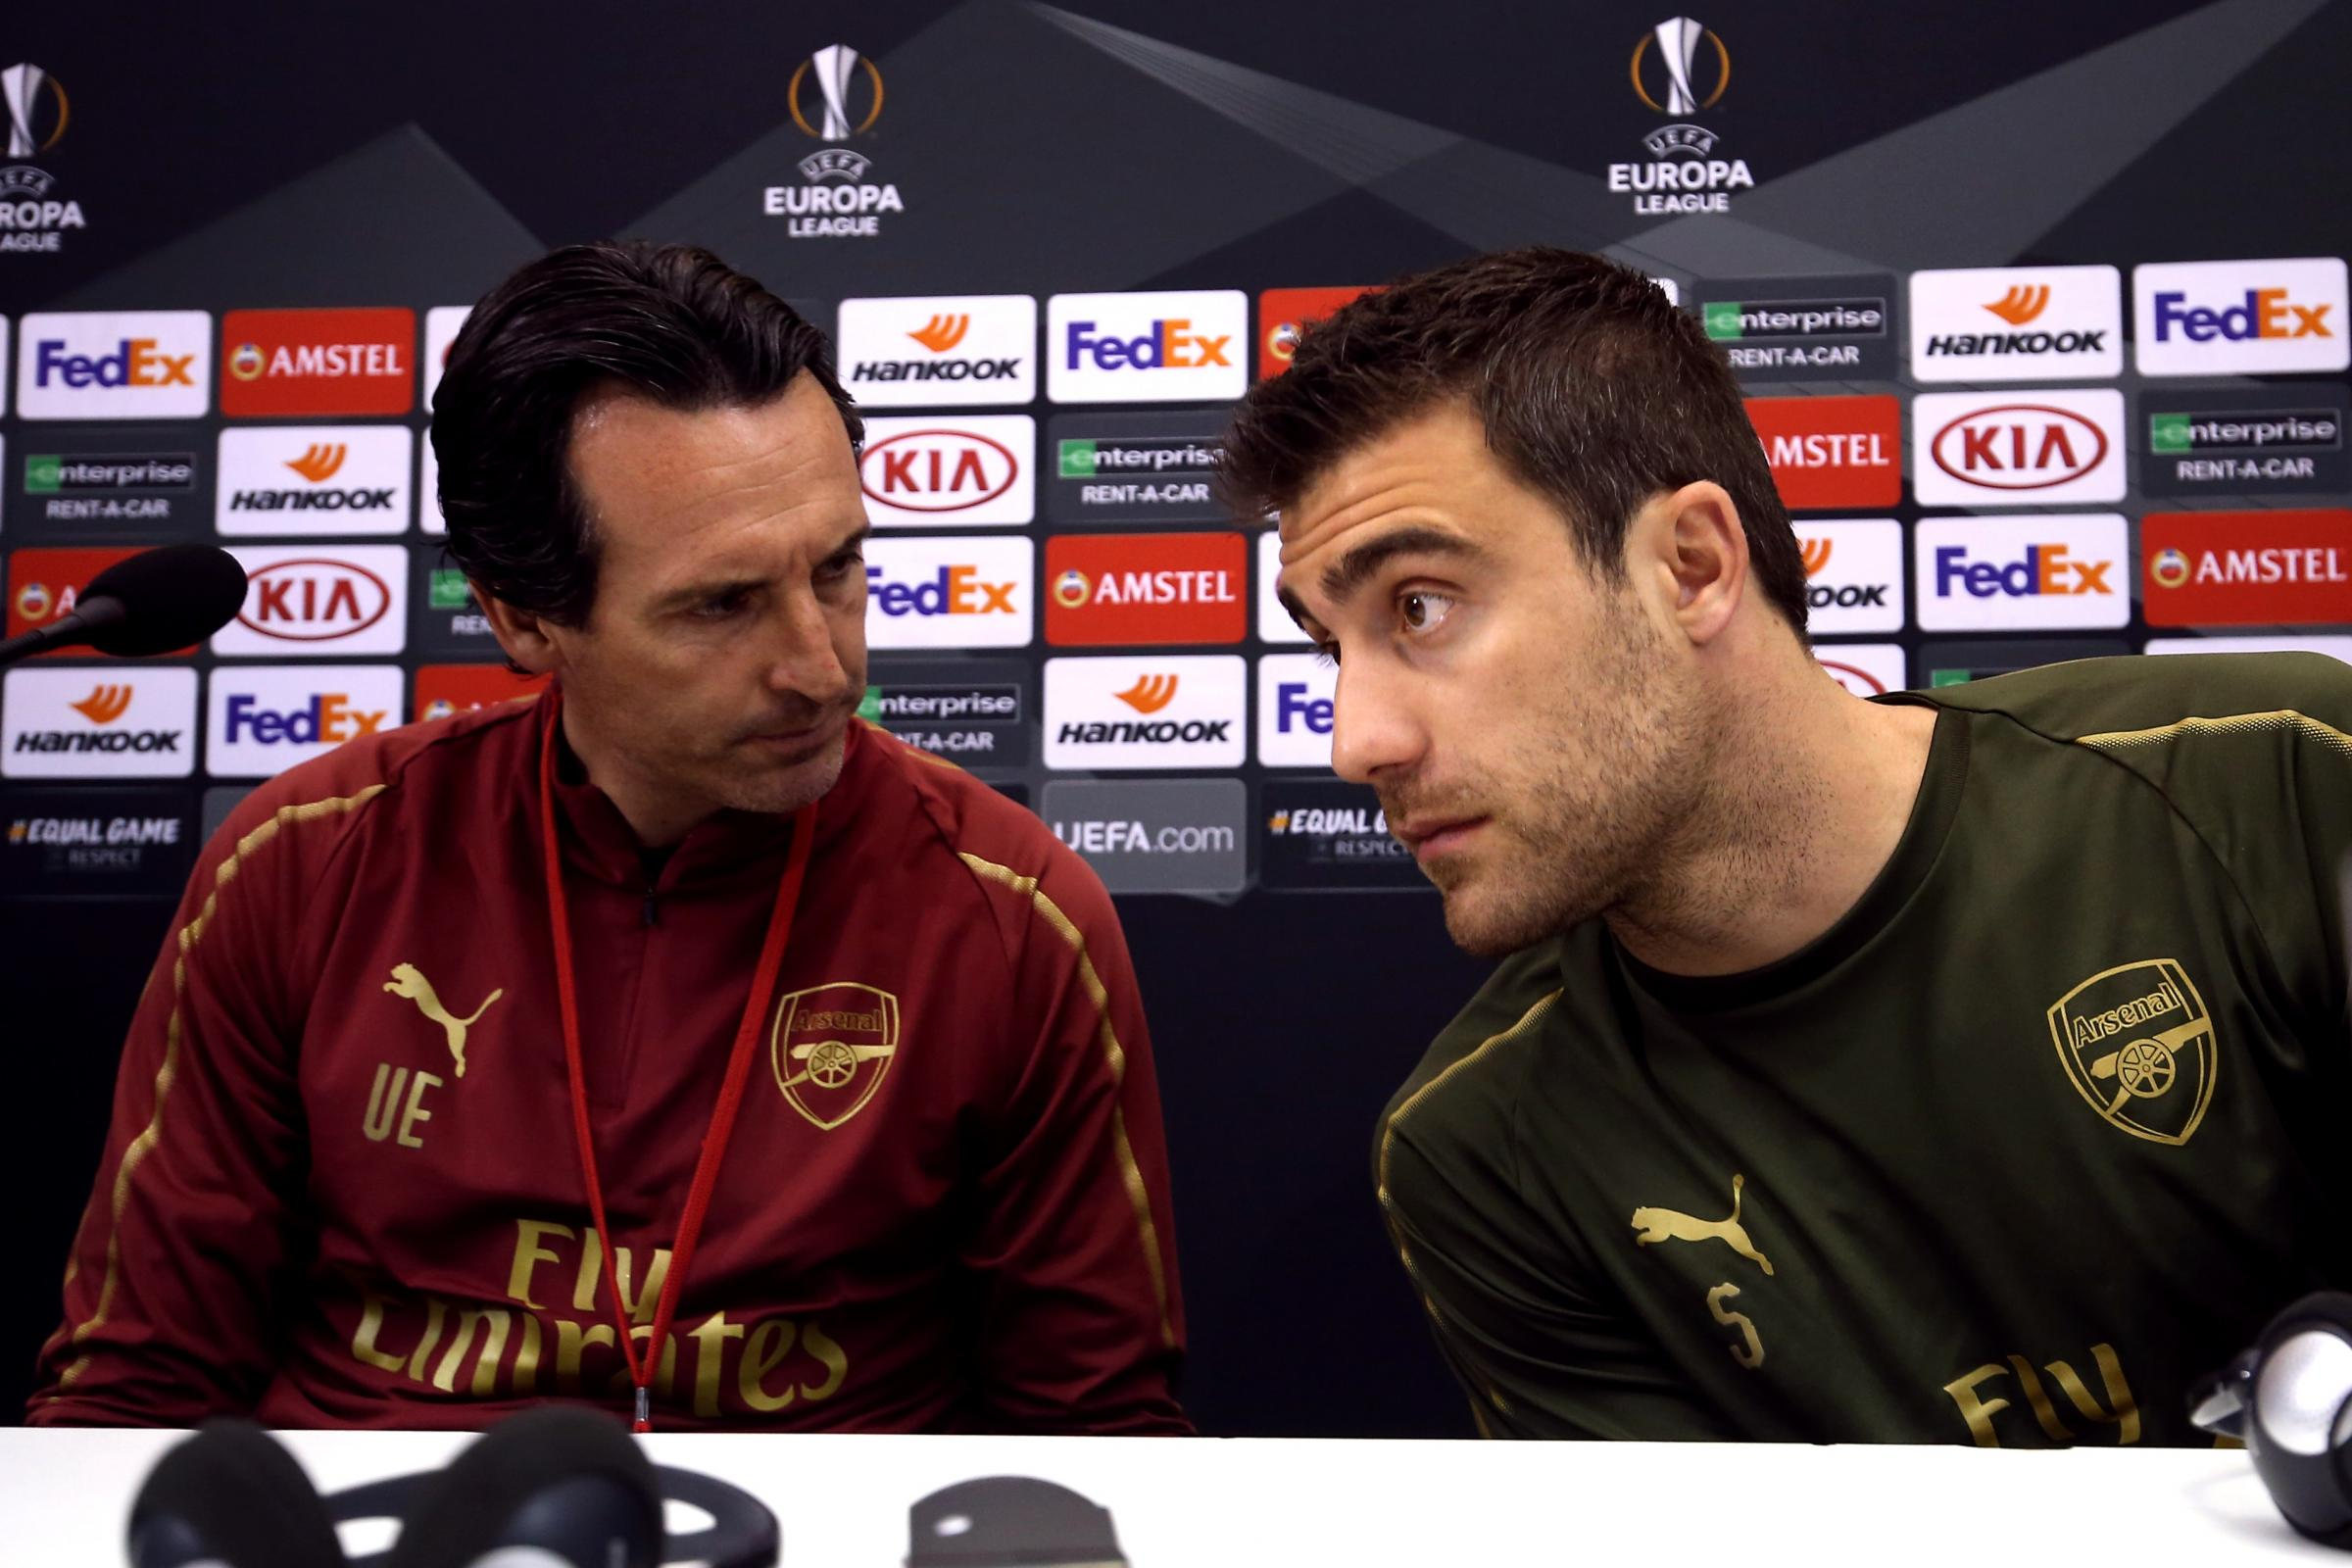 Arsenal manager Unai Emery and defender Sokratis Papastathopoulos address the media